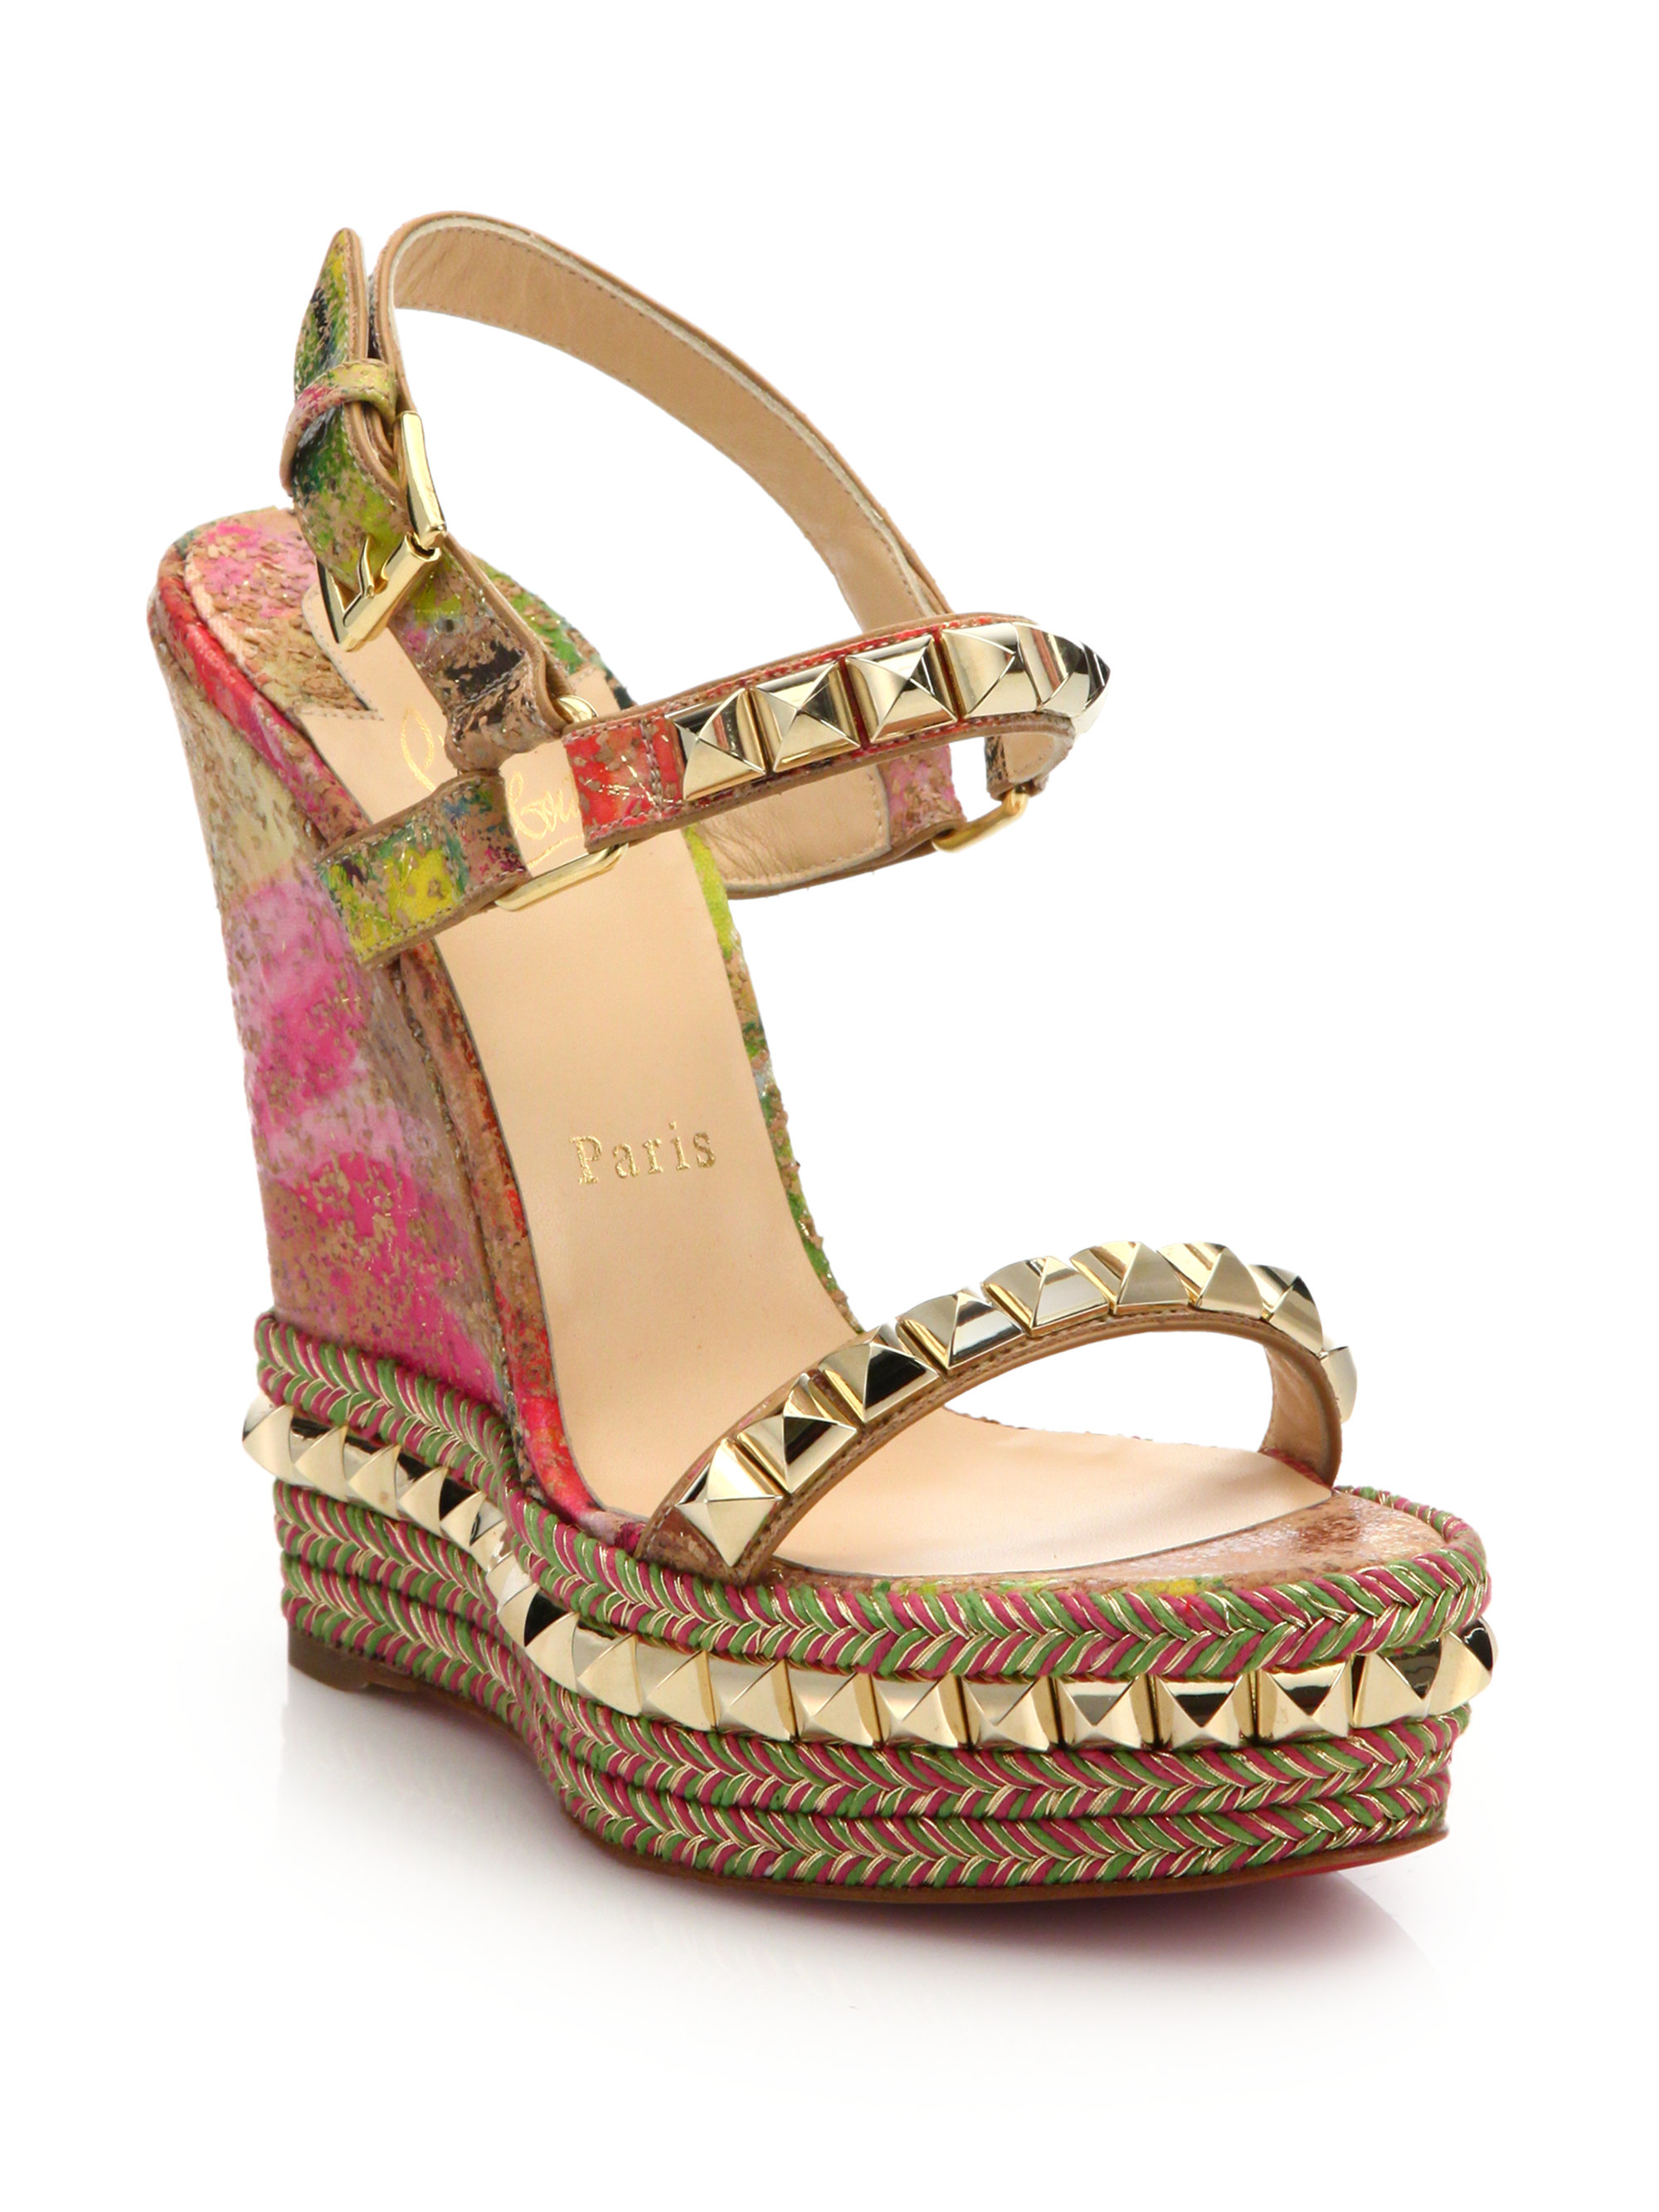 christian louboutin wedge espadrille sandals